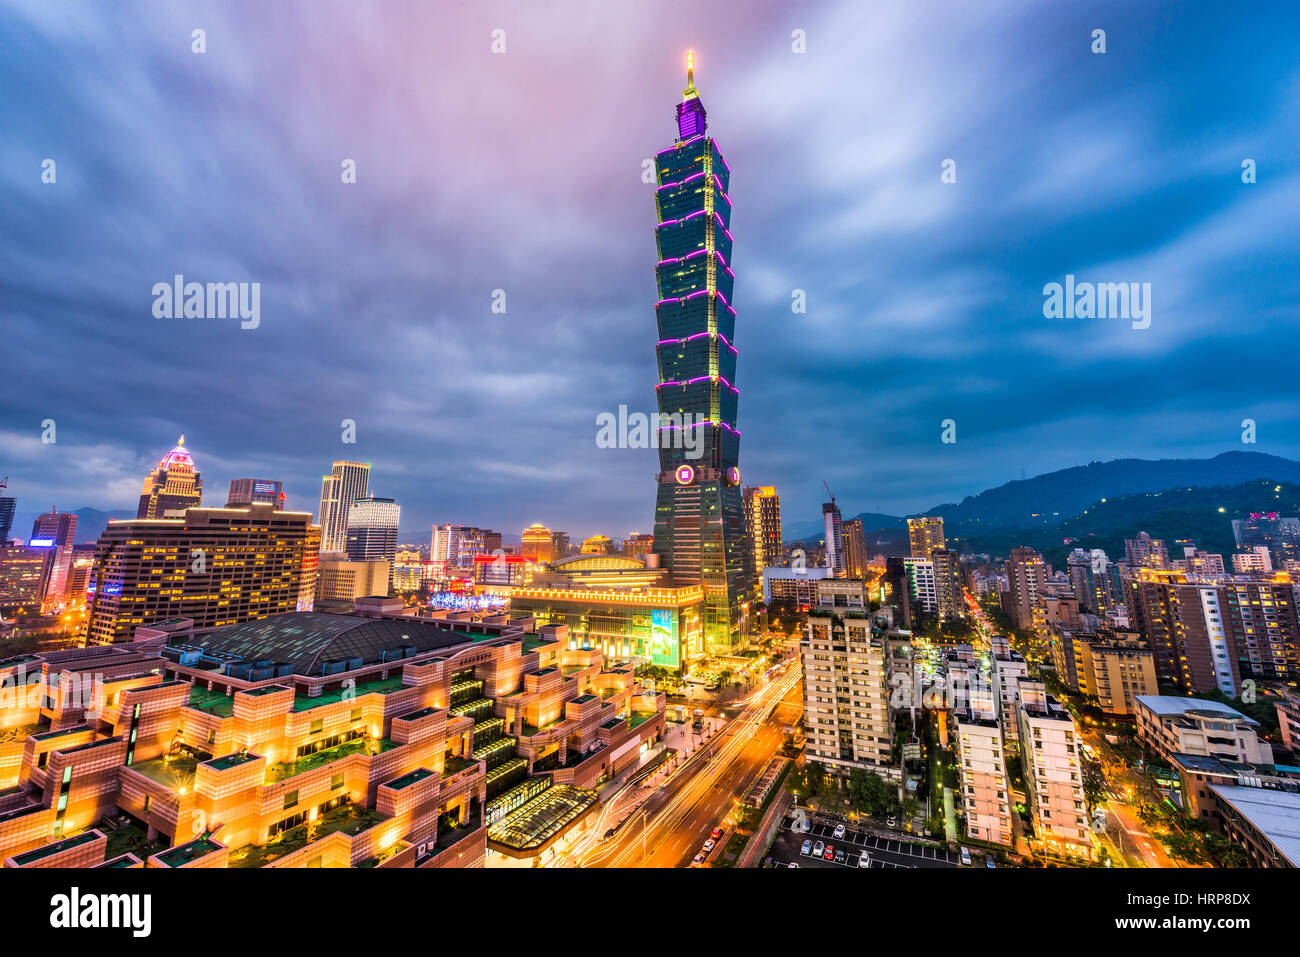 Taipei, Taiwan downtown skyline. - Stock Image